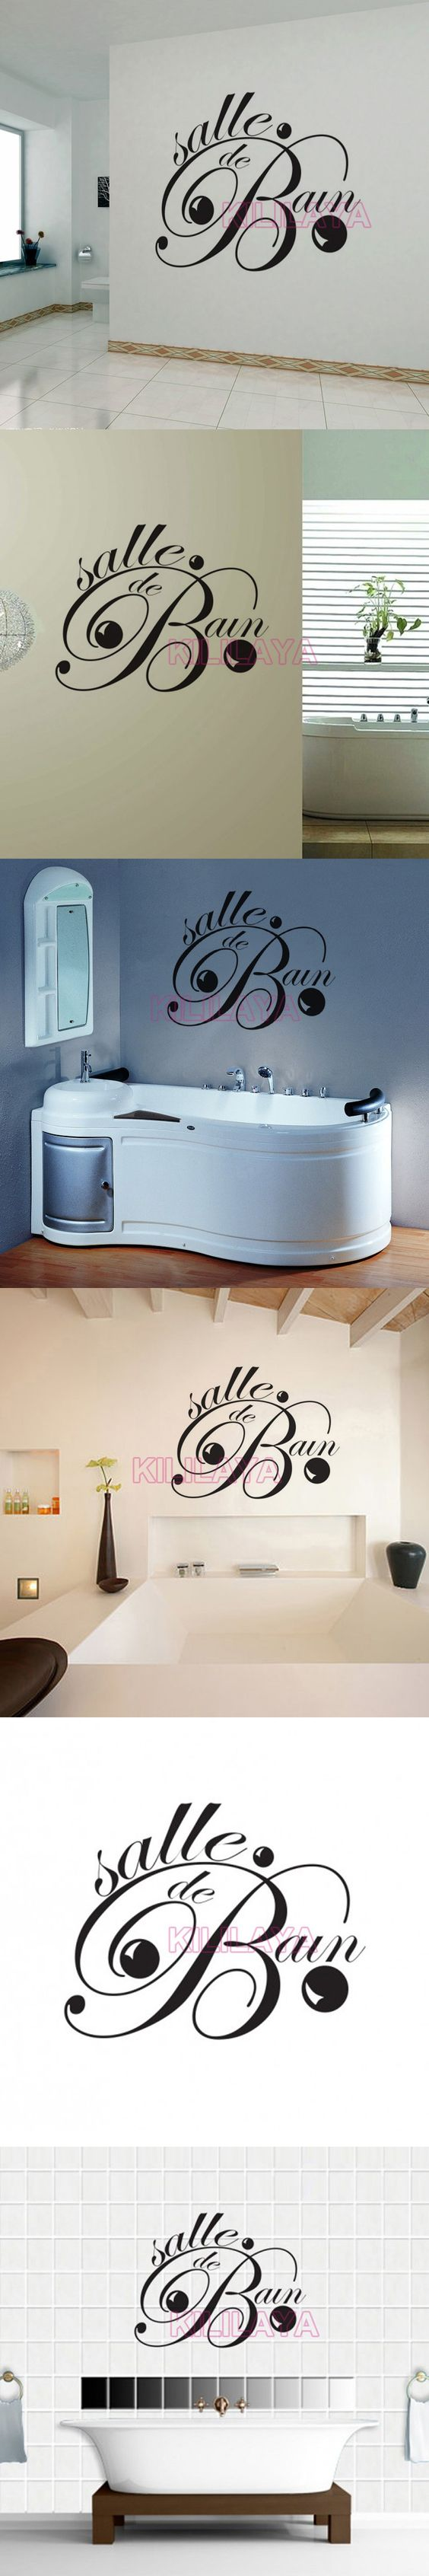 Stickers french salle de bain vinyl wall sticker for - Pvc mural salle de bain ...